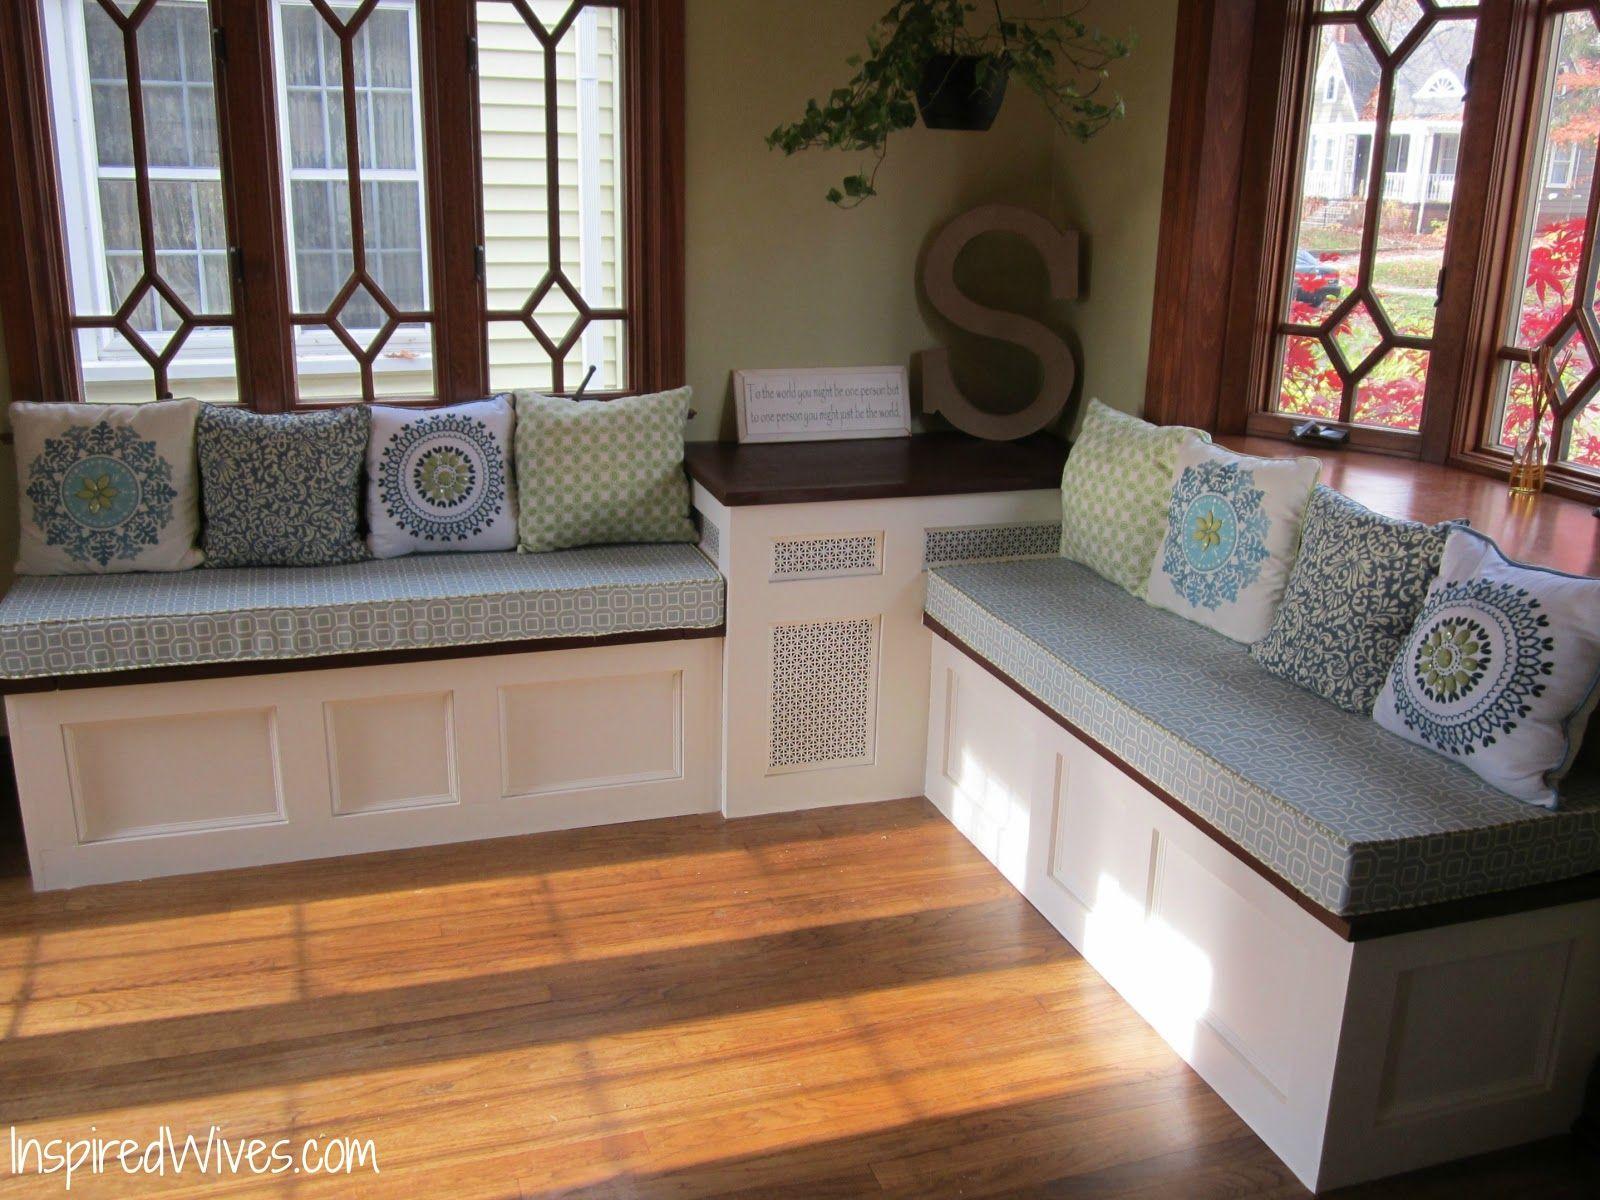 Kitchen Bench Diy Inspiredwives Com Diy Storage Bench Nook Furniture Breakfast Nook Furniture